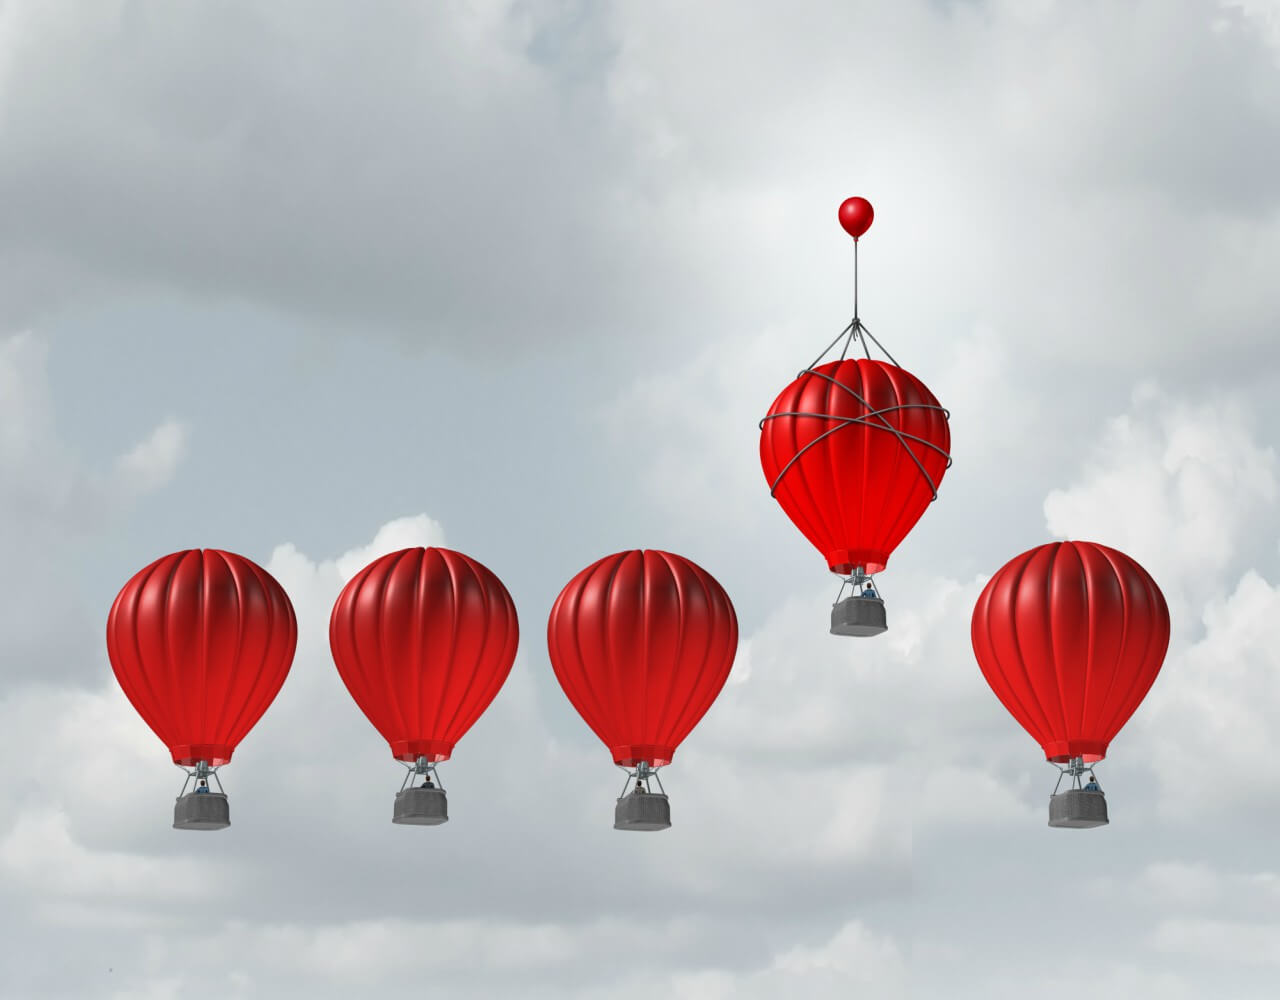 Competitive edge and business advantage concept as a group of hot air balloons racing to the top but an individual leader with a small balloon attached giving the winning competitor an extra boost to win the competition.